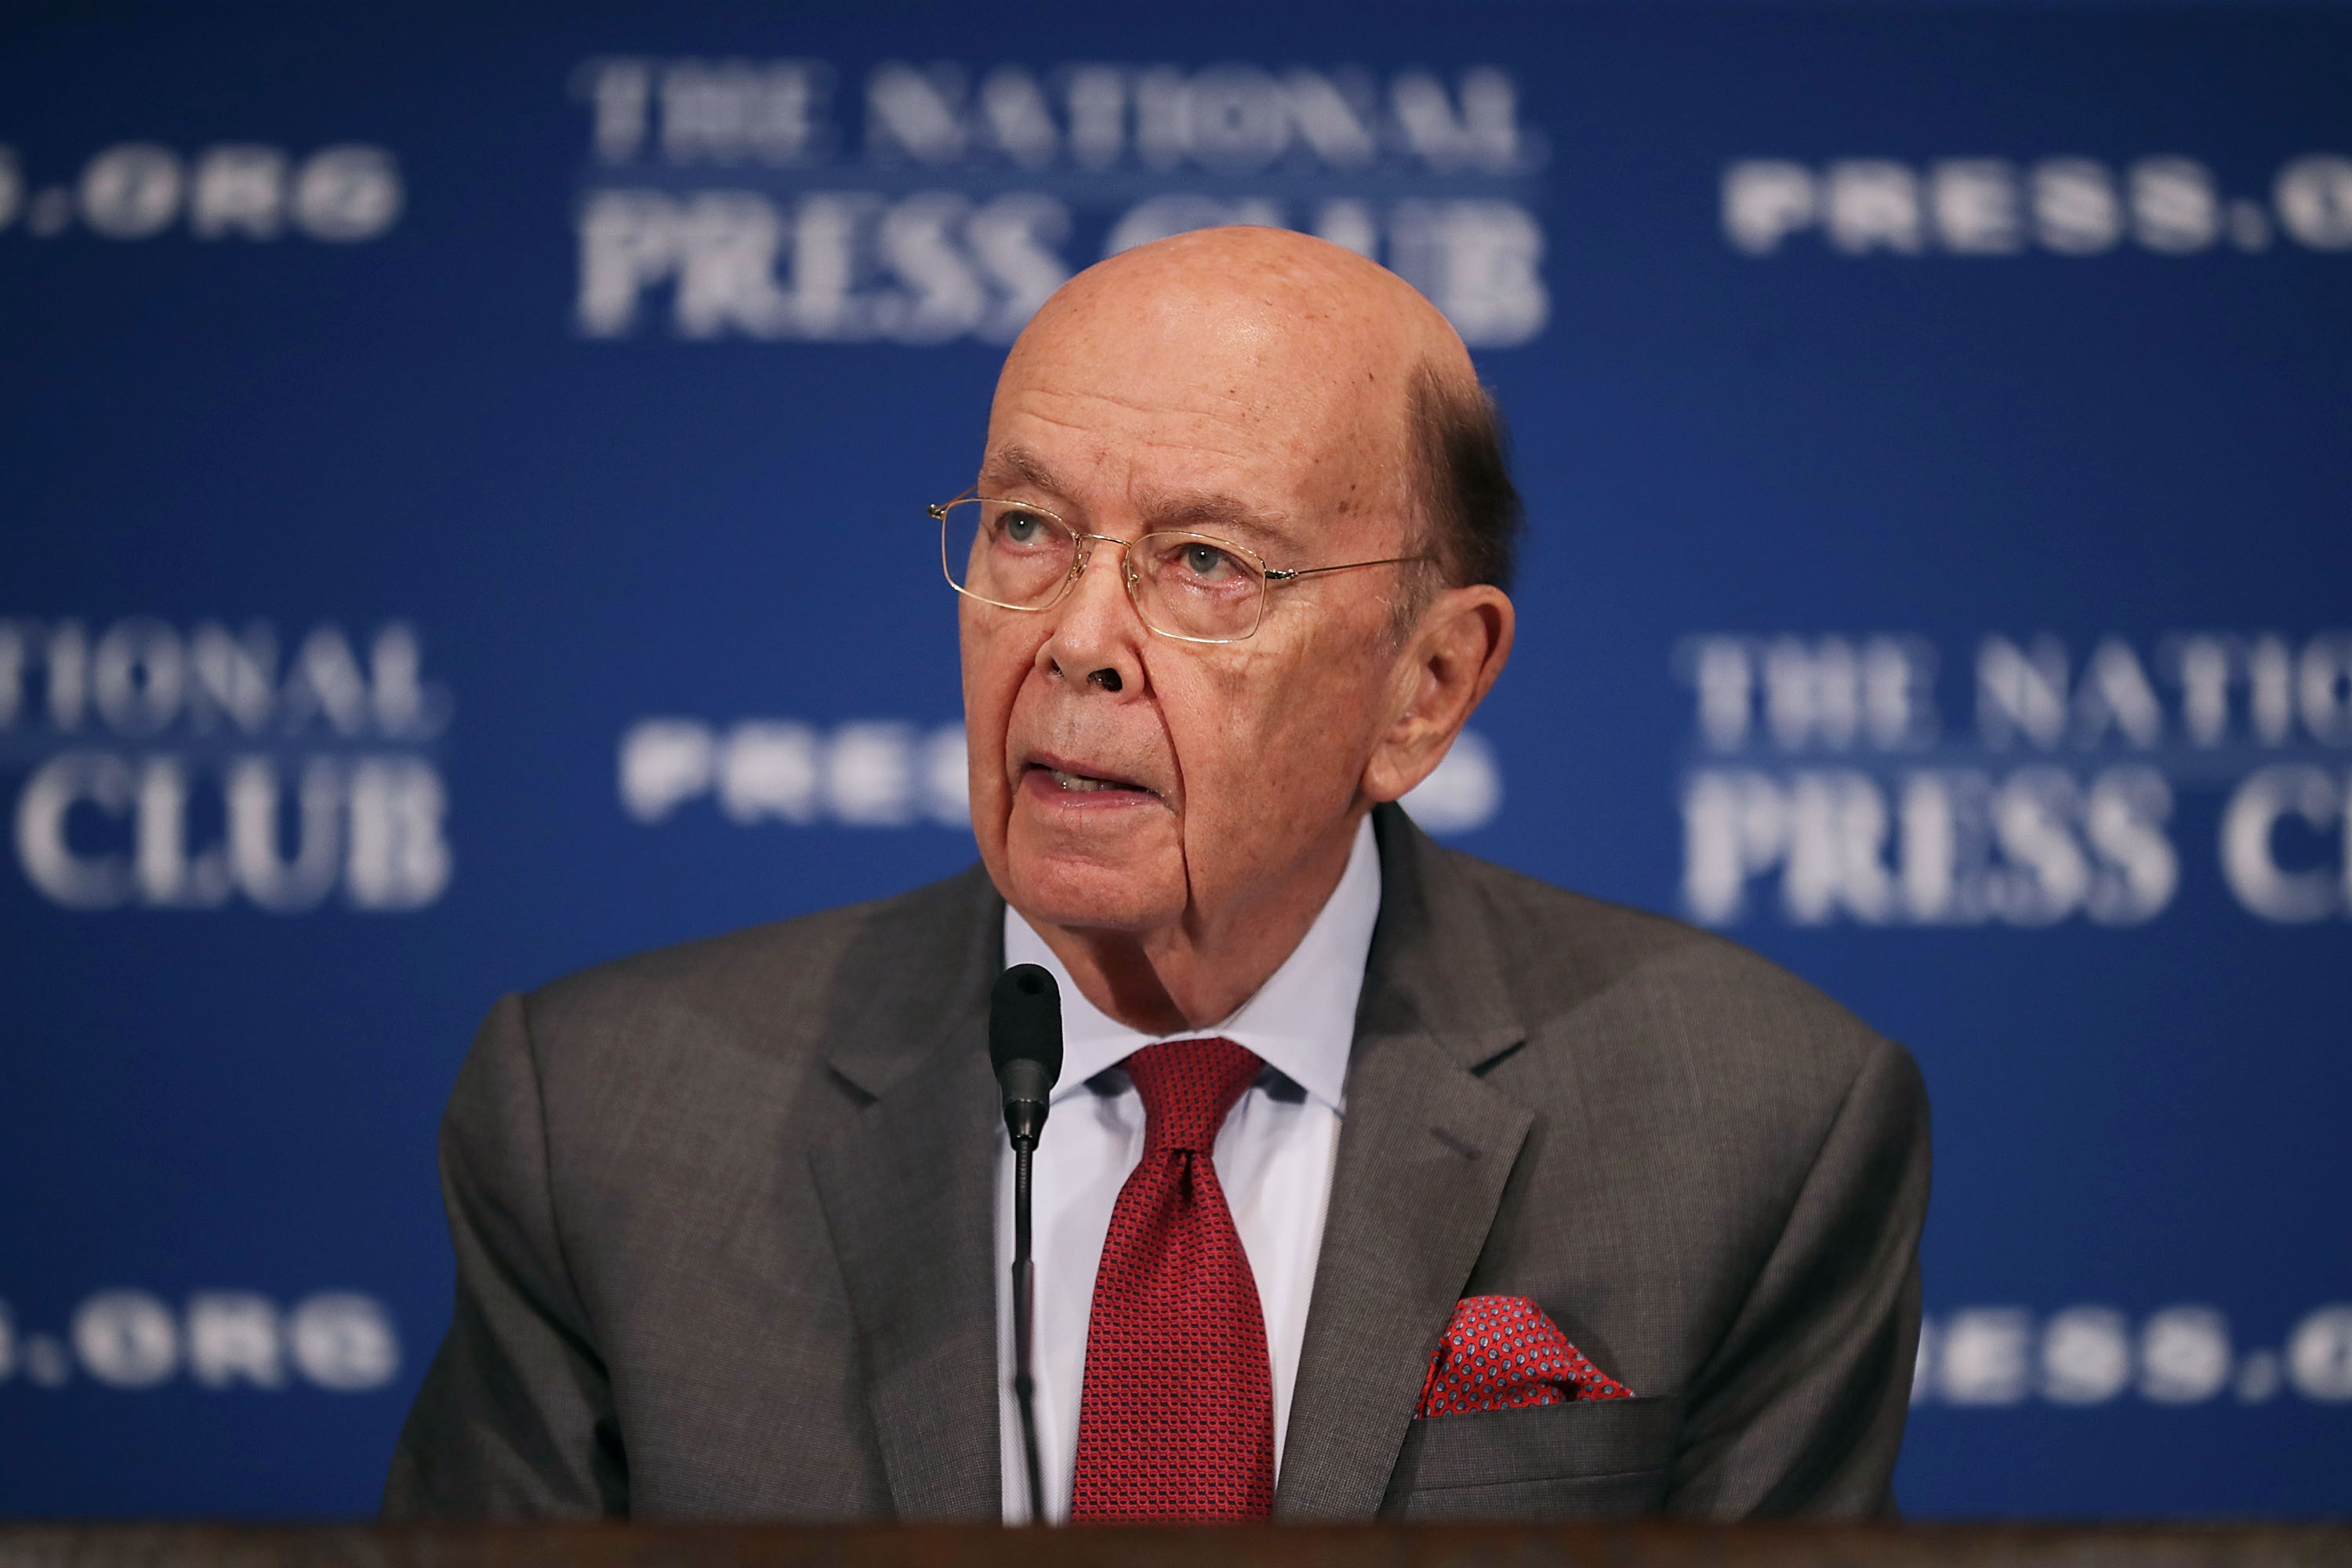 Commerce Secretary Wilbur Ross delivers remarks at the National Press Club on May 14, 2018. (Chip Somodevilla/Getty Images)